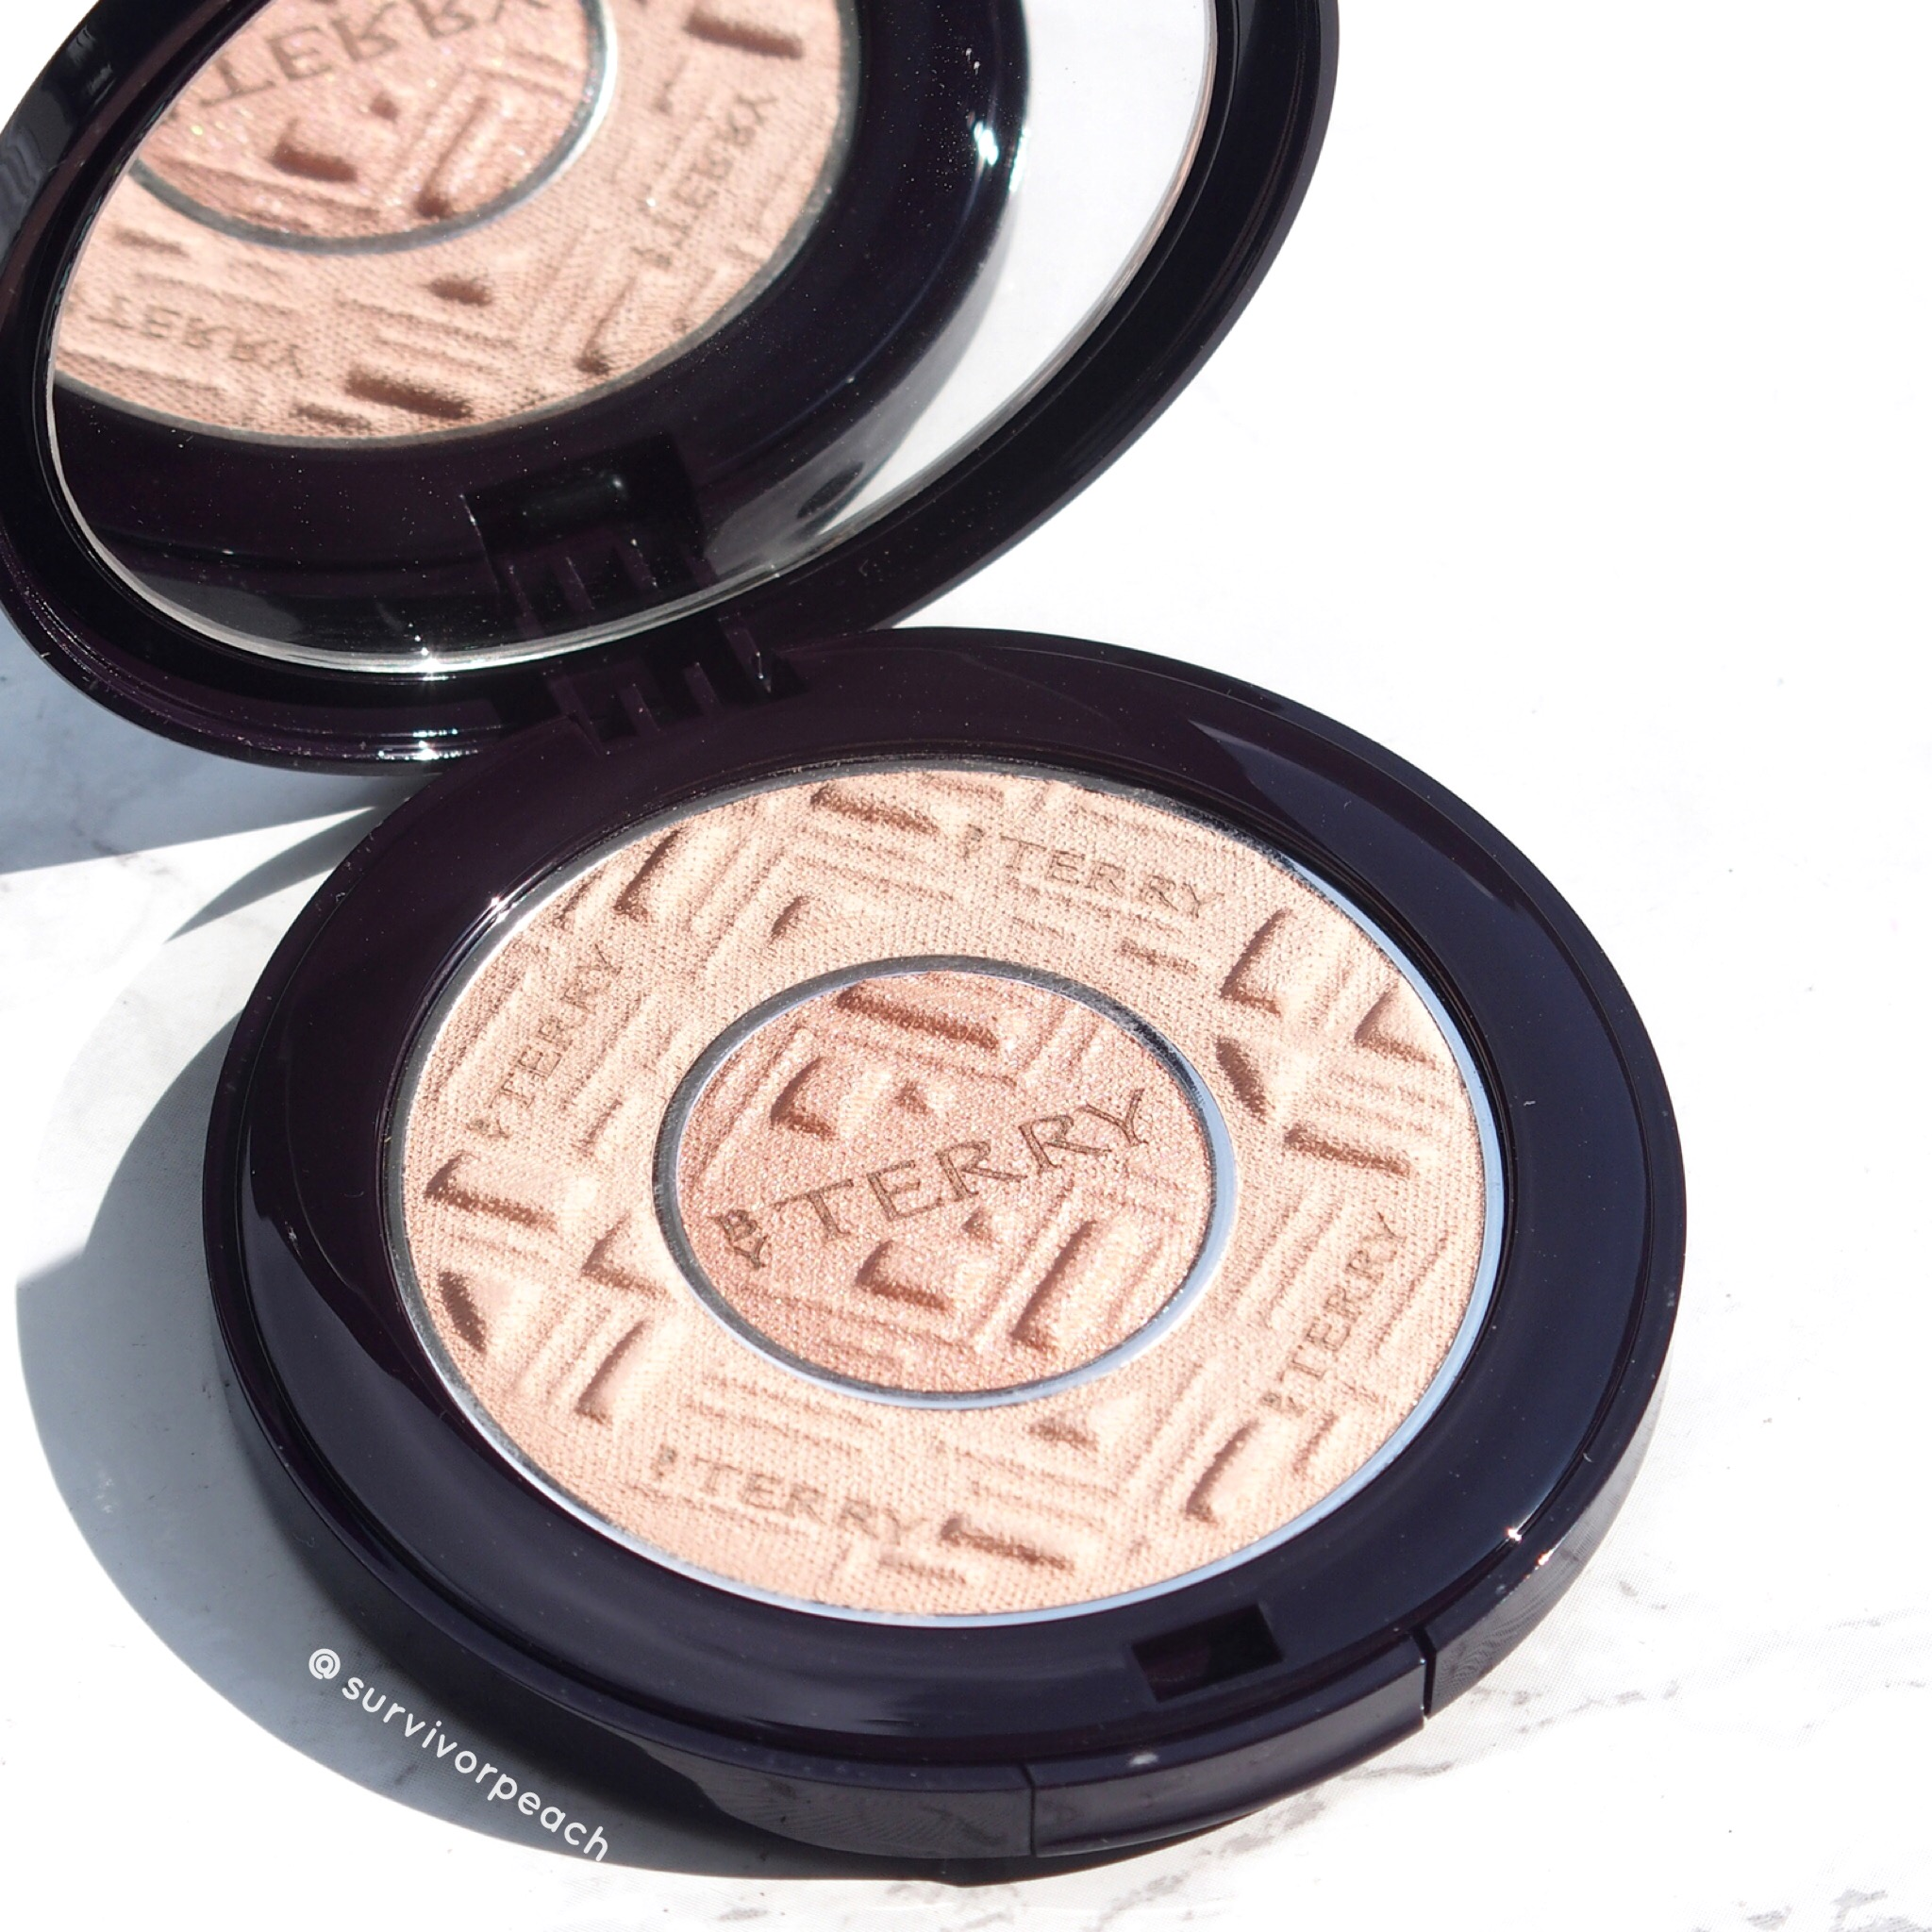 ByTerry Compact-Expert Dual Powder in Apricot Glow!